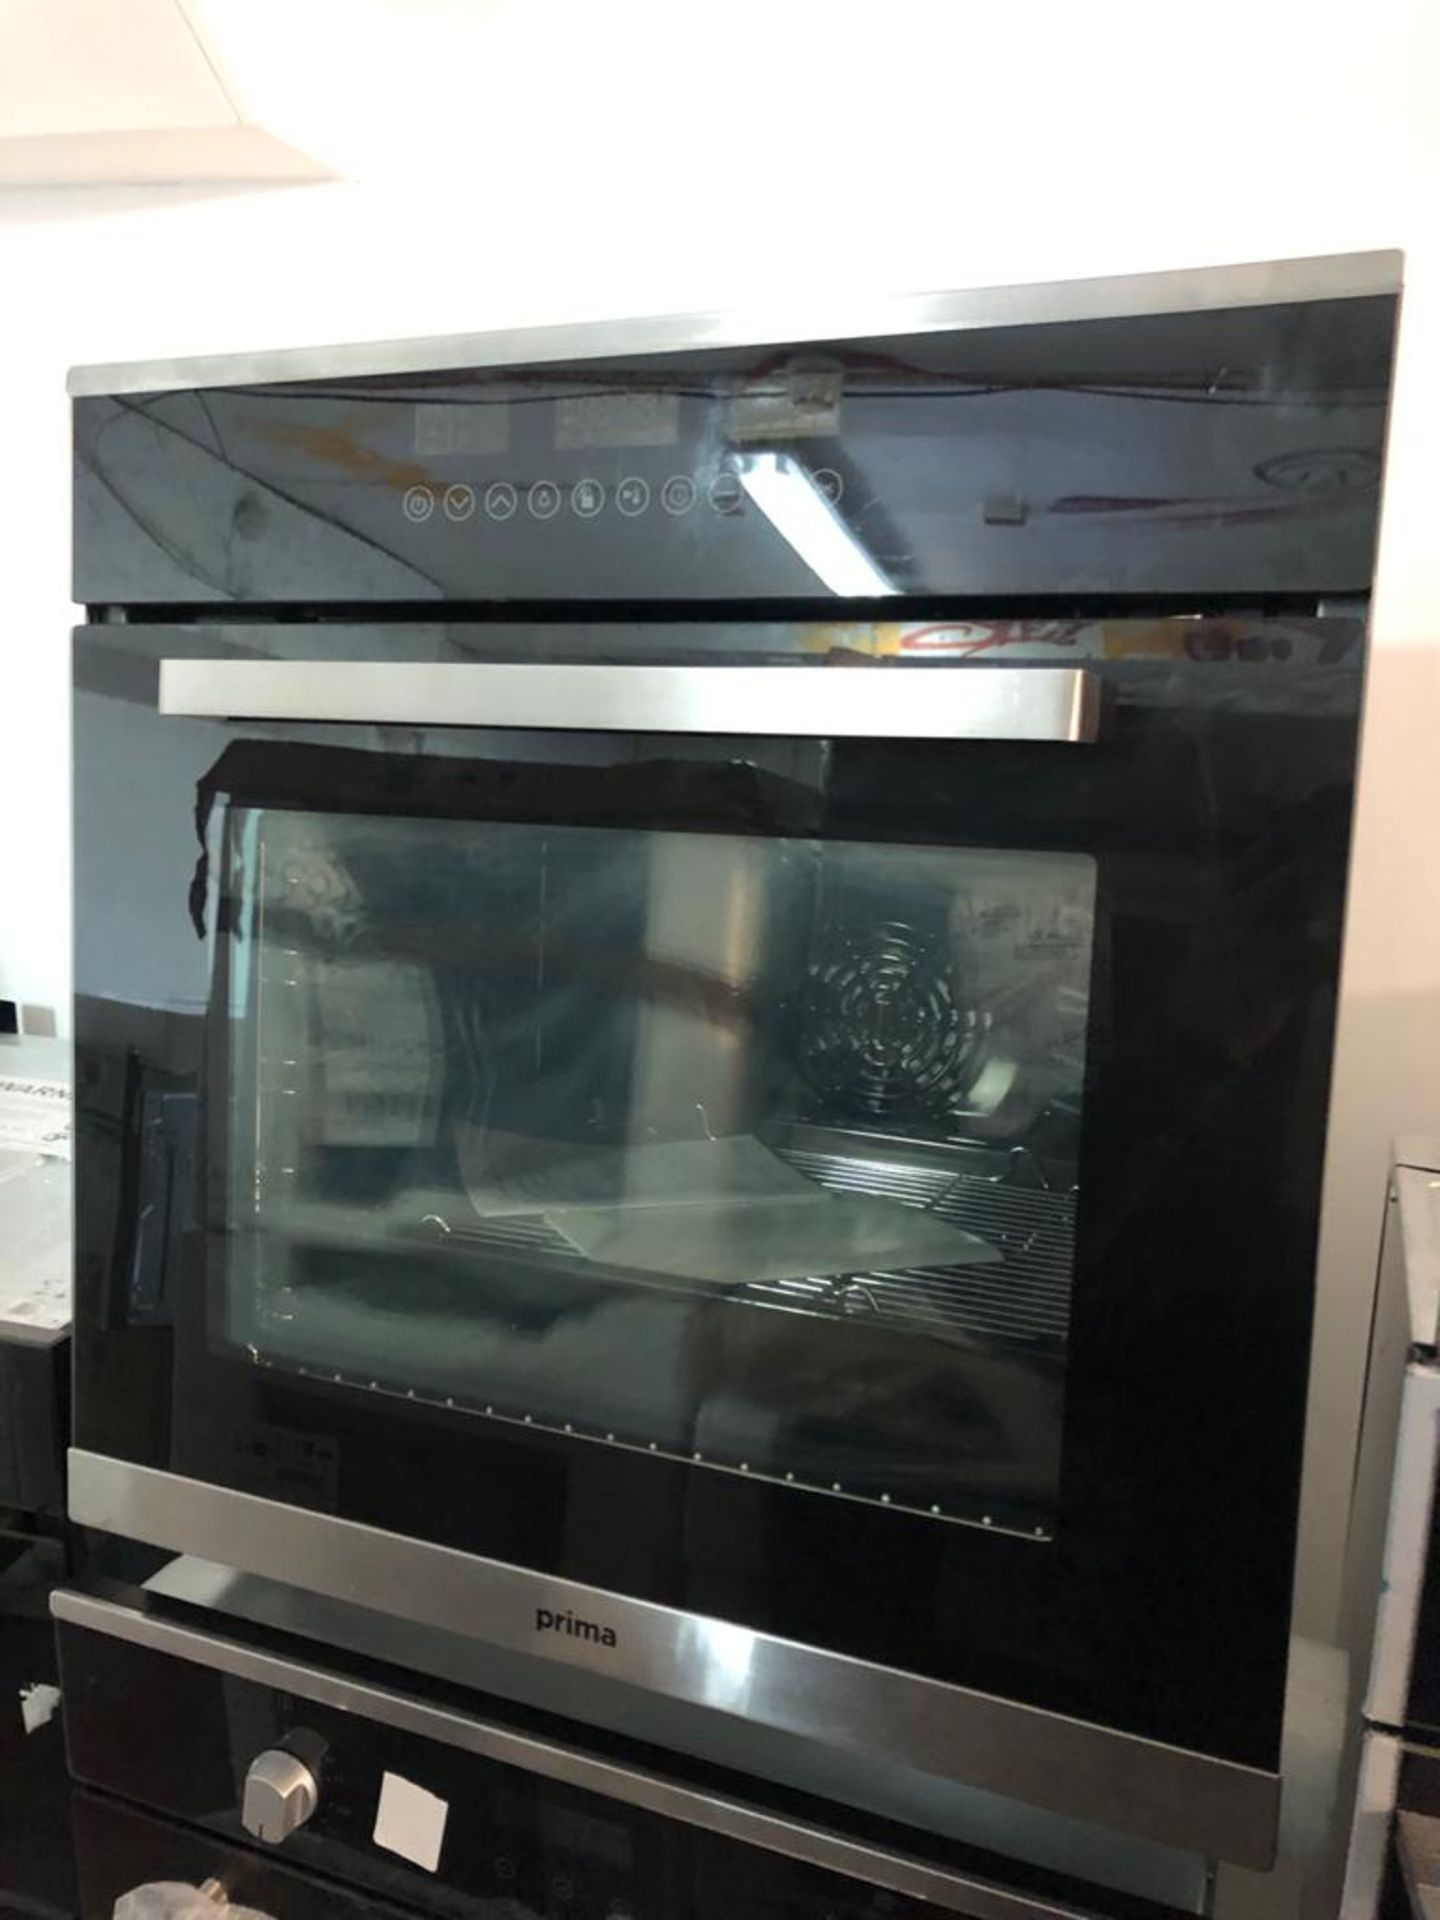 BRAND NEW UNPACKAGED Prima+ PRSO110 Integrated Single Pyrolytic Oven